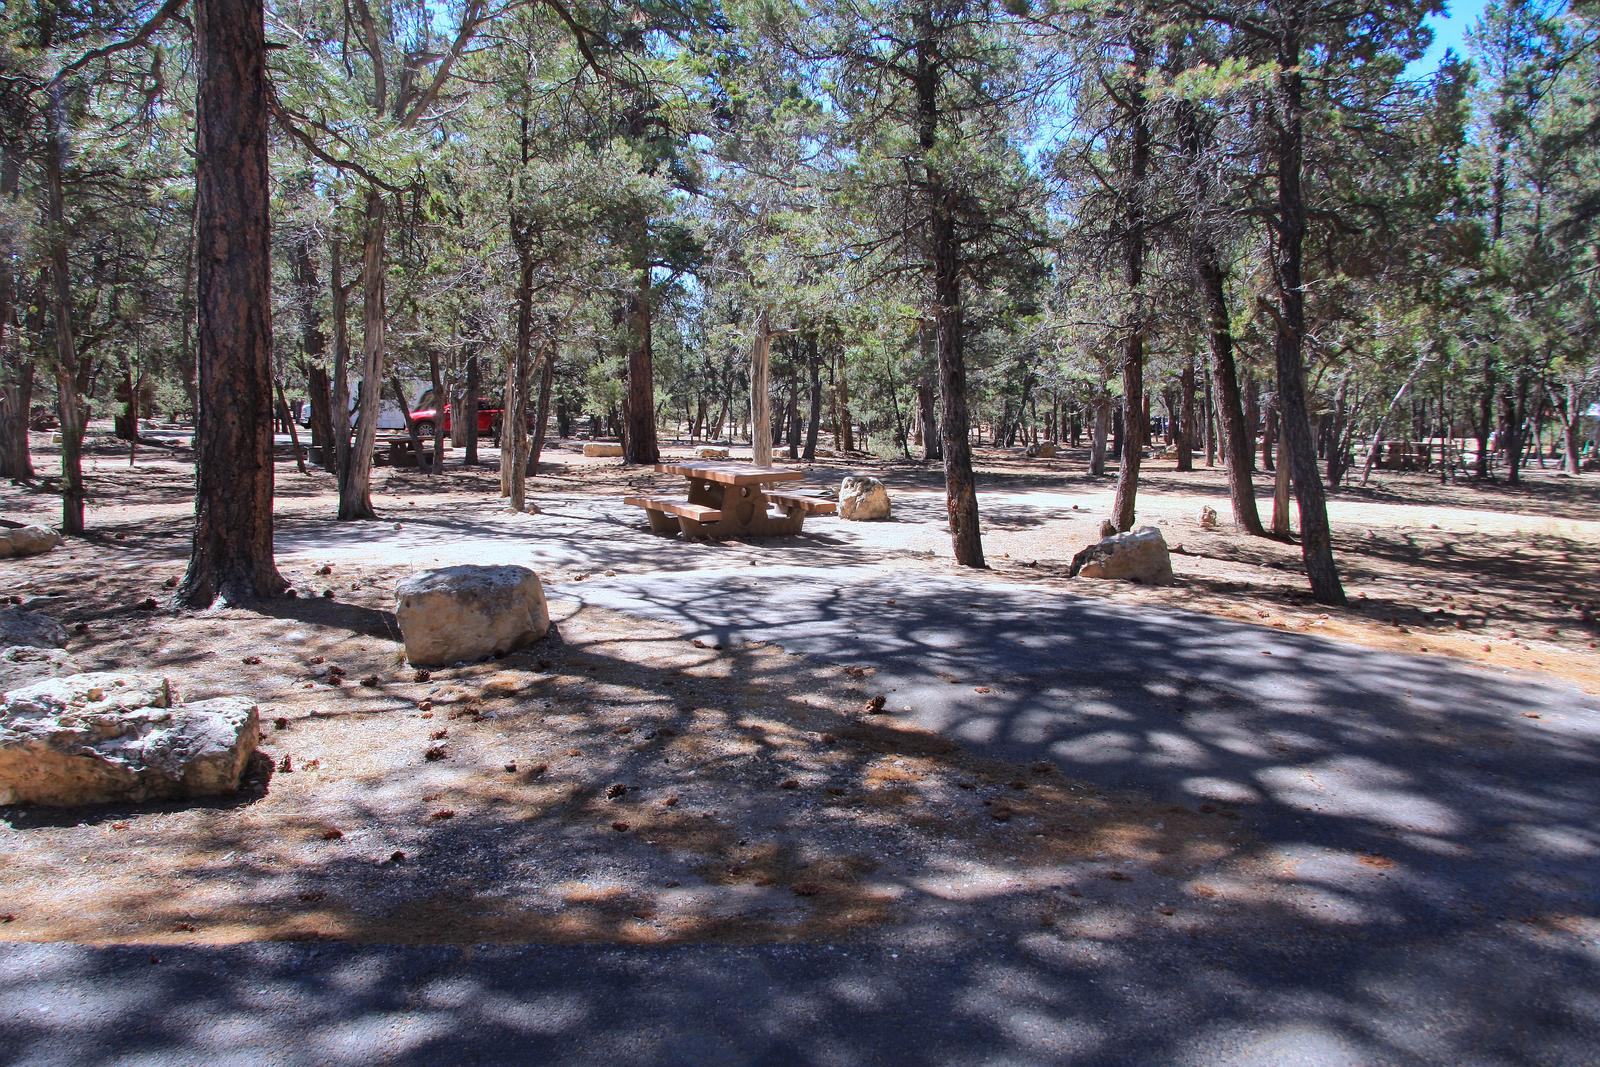 Parking spot and picnic table, Mather CampgroundThe parking spot and picnic table for Aspen Loop 10, Mather Campground